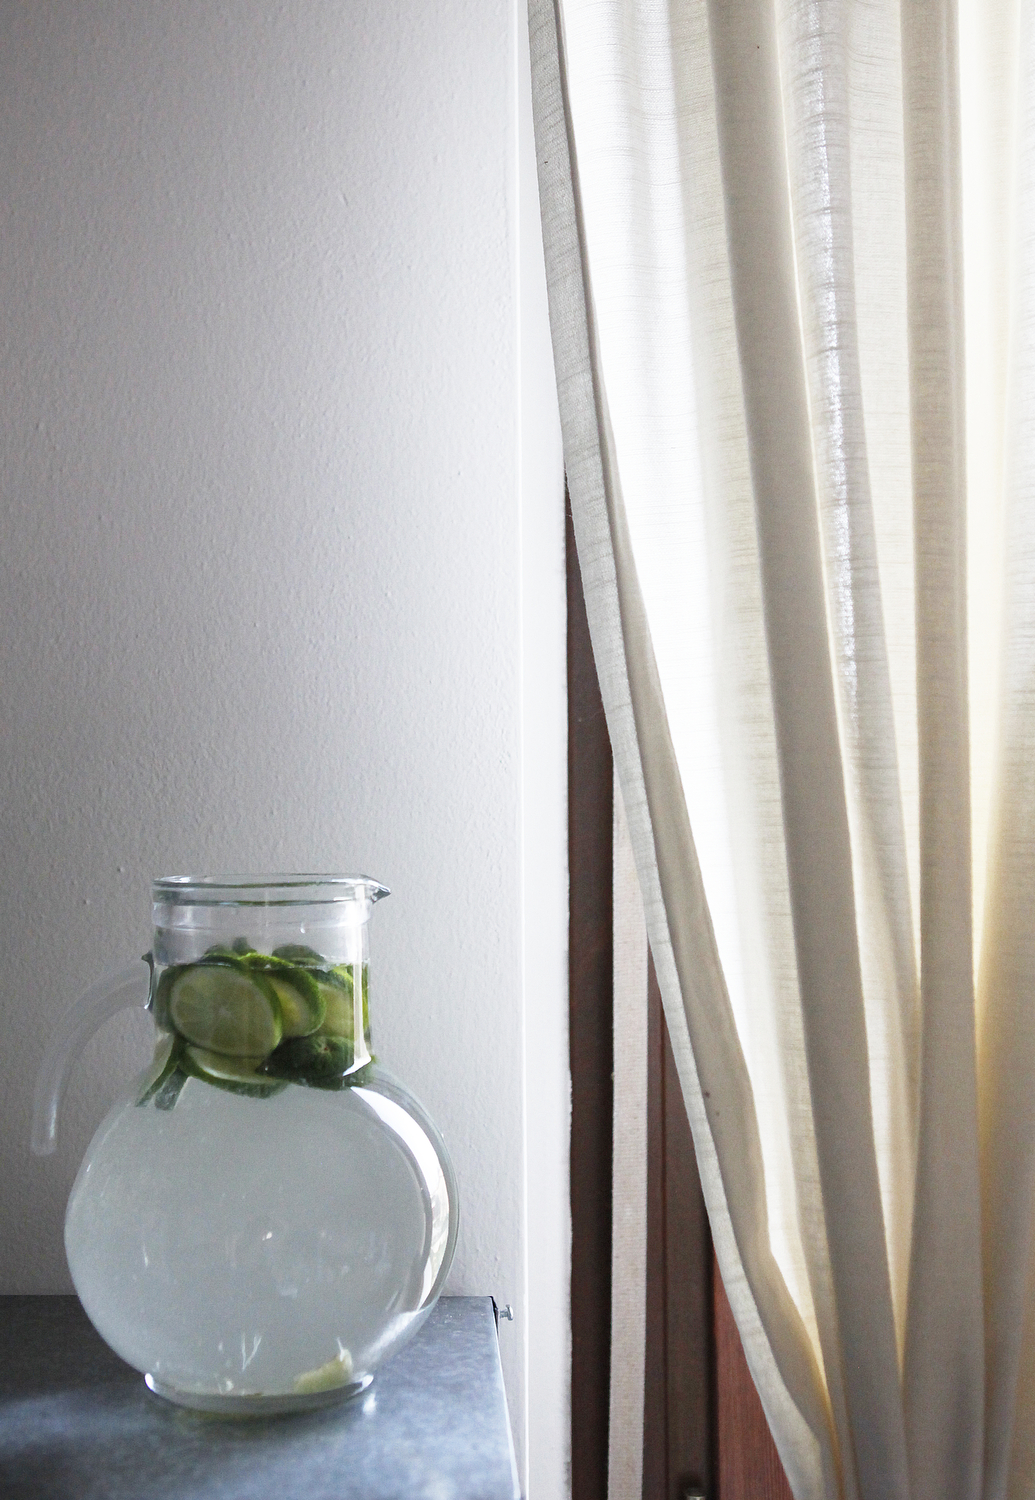 Infused water recipes | Freckle & Fair